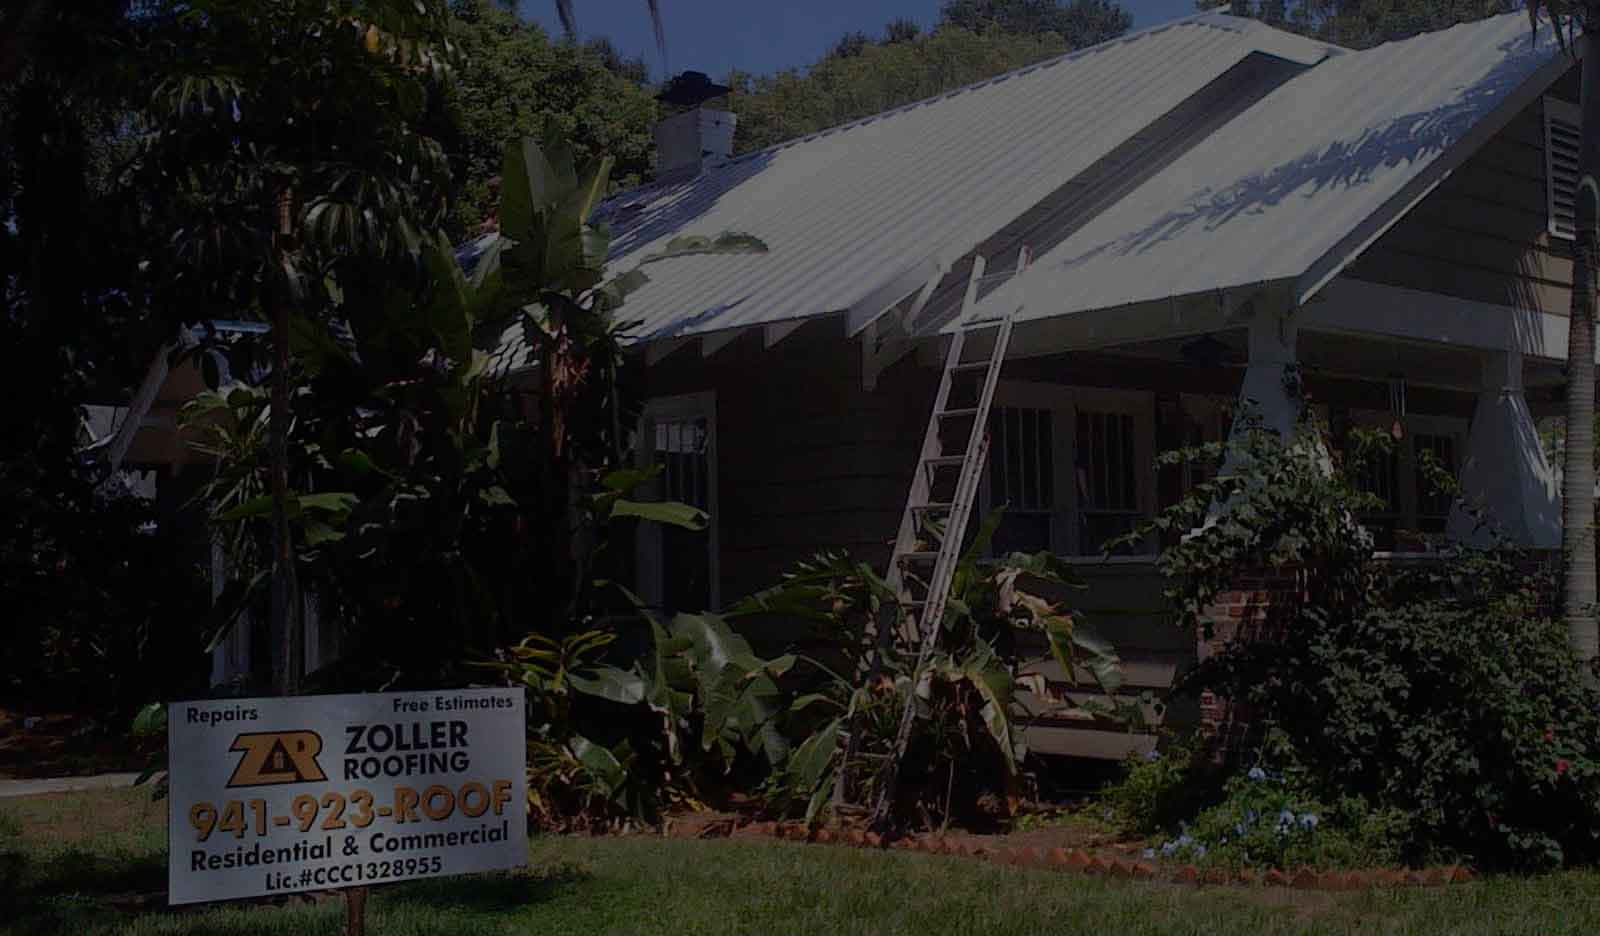 THE COMMERICAL & RESIDENTIAL ROOFING LEADER